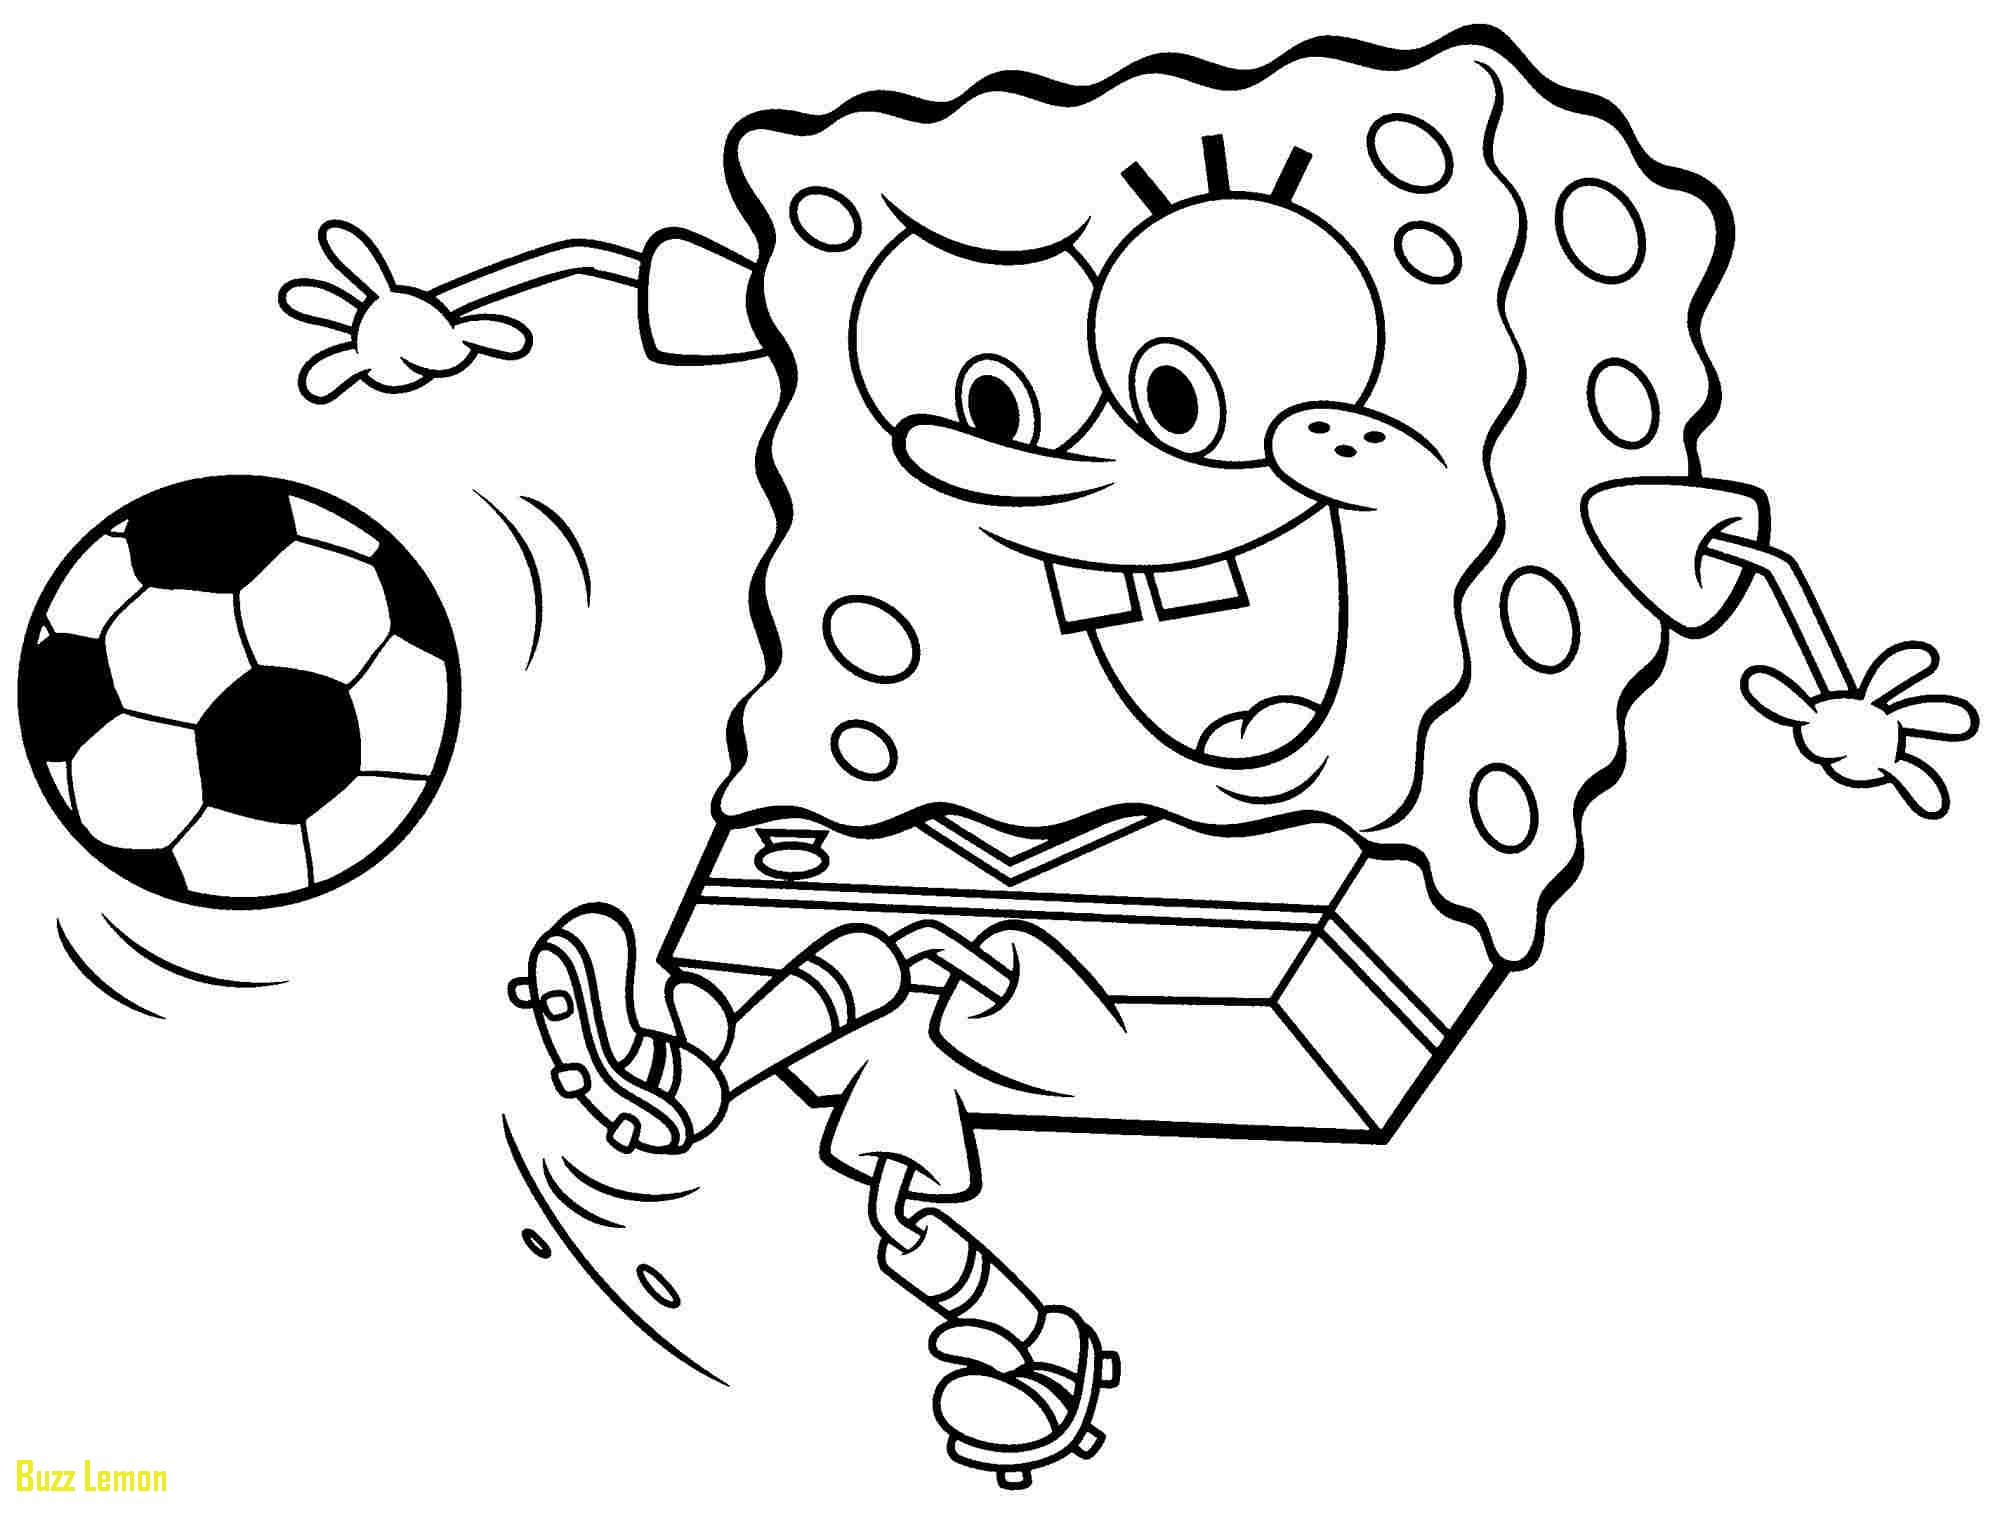 2000x1513 Coloring Page Spongebob New Spongebob Squarepants Coloring Pages